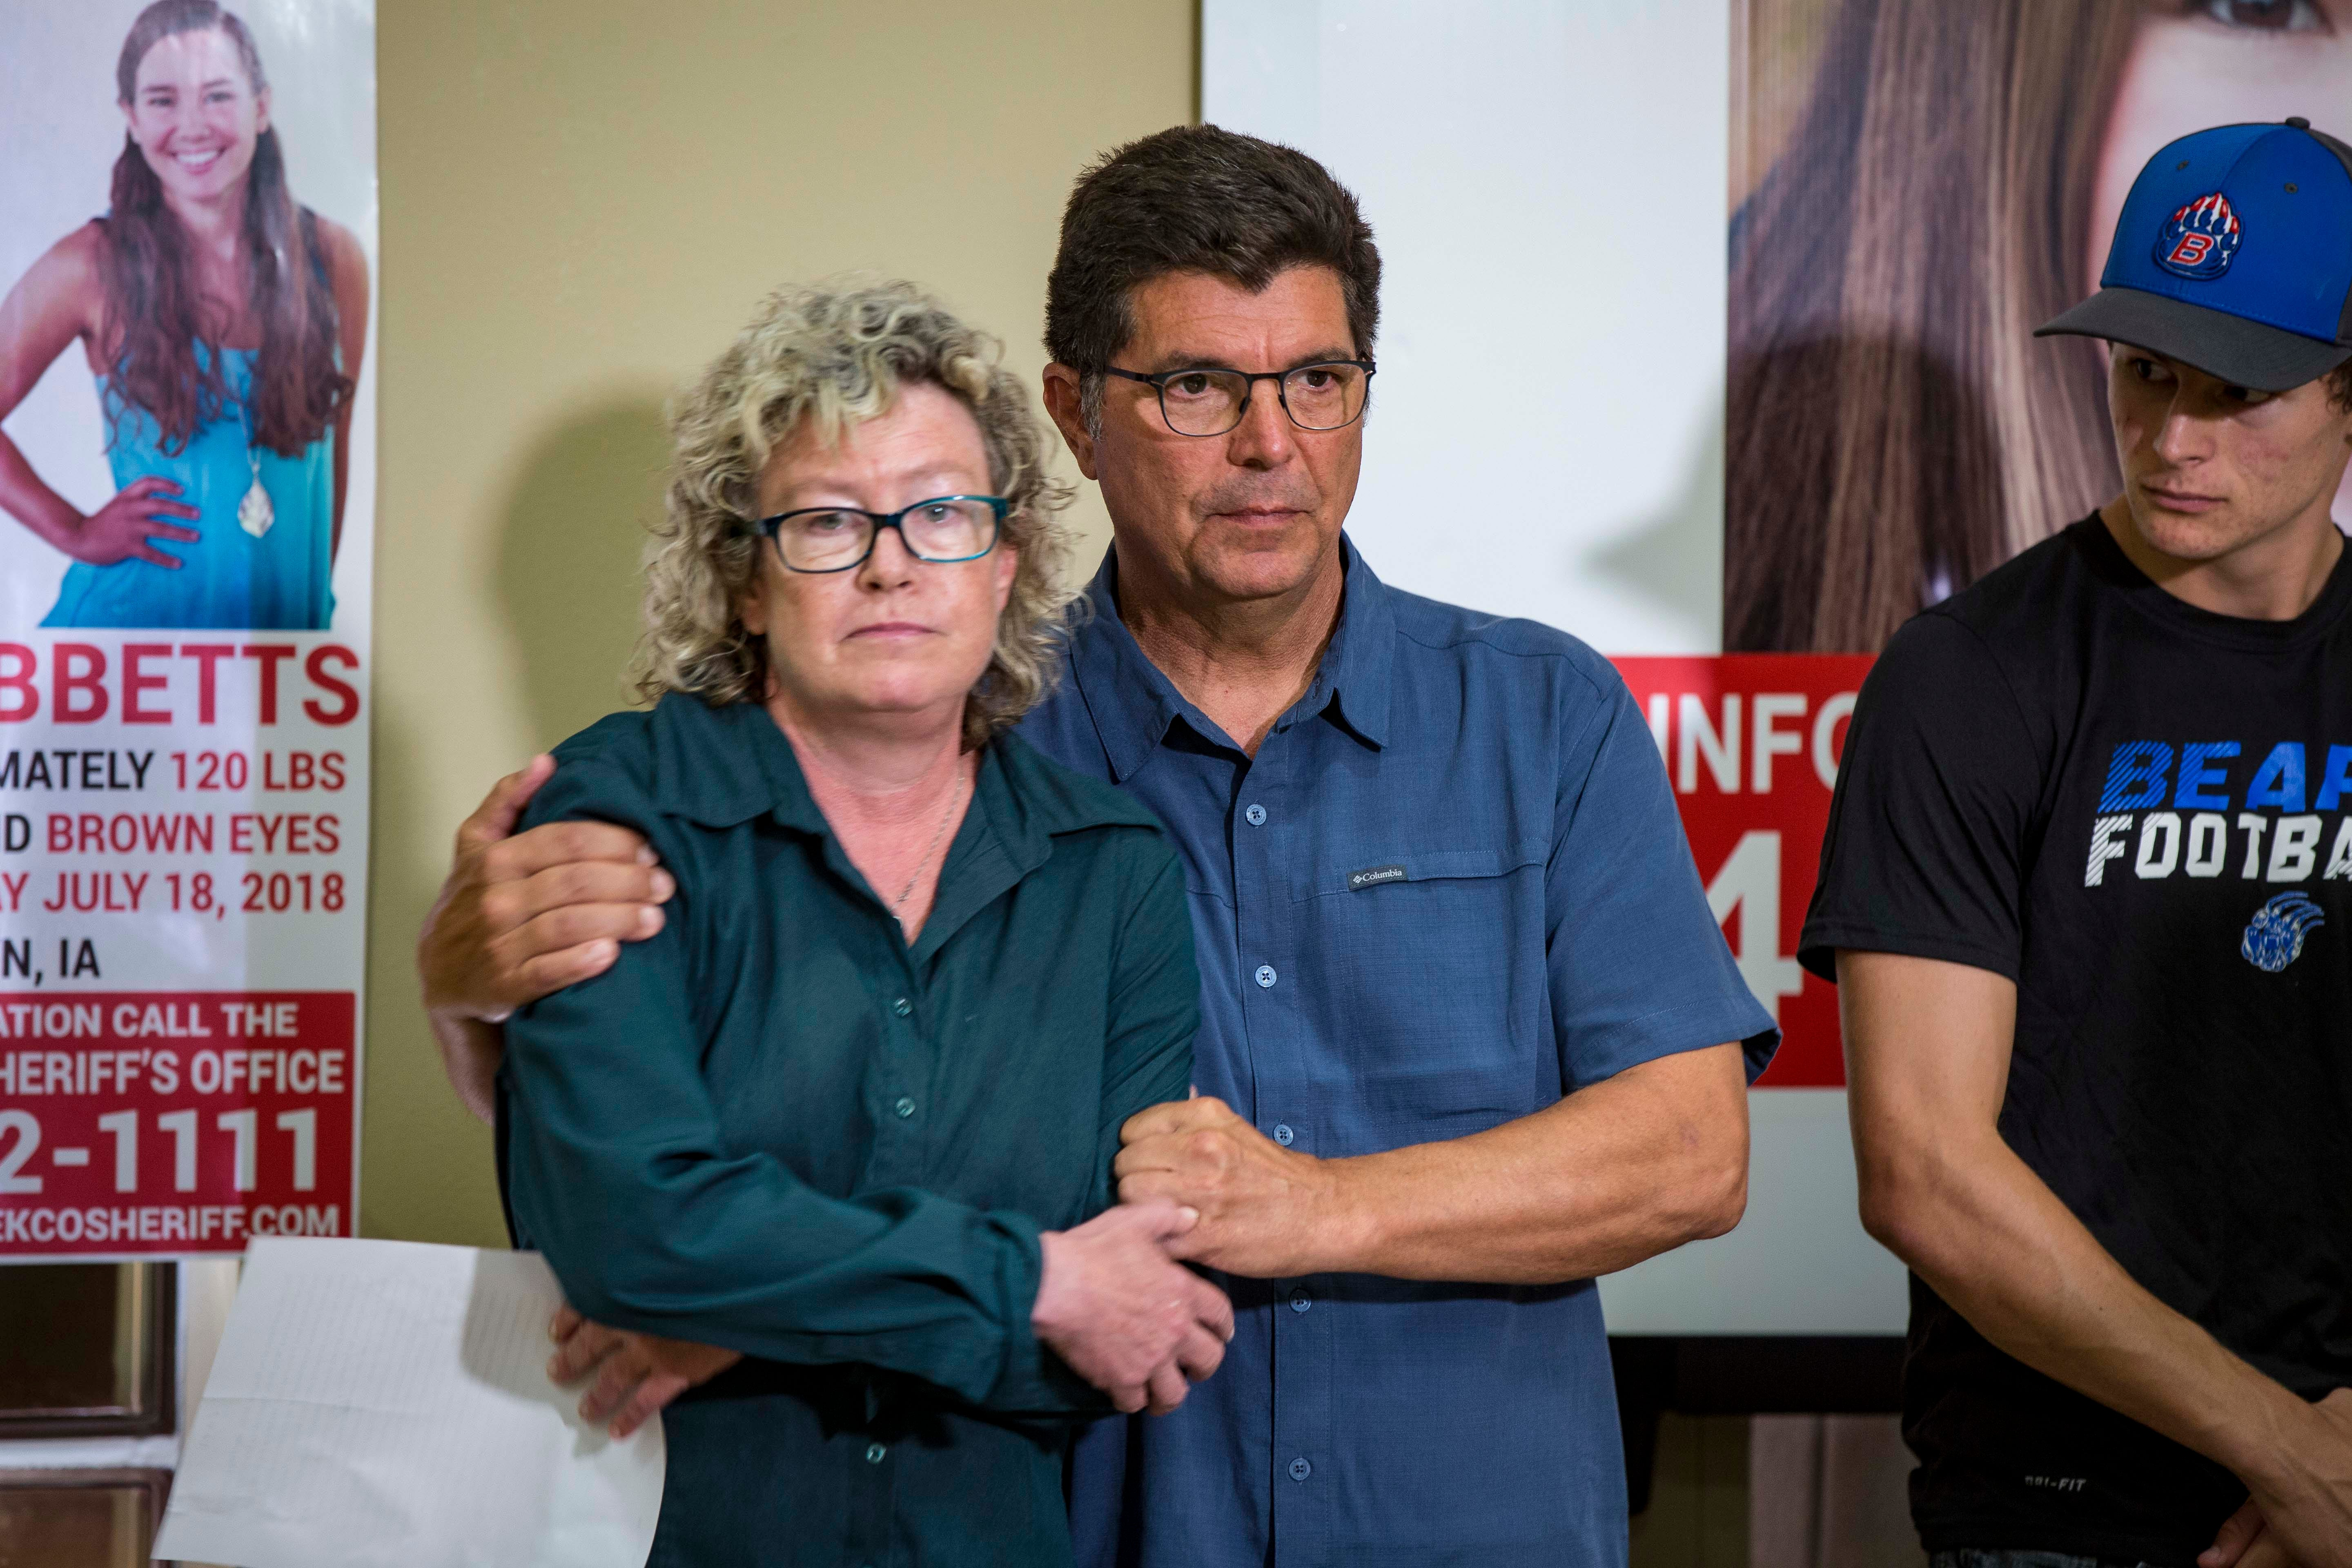 """Laura Calderwood and Rob Tibbetts parents of the missing 20-year-old University of Iowa student Mollie Tibbetts during a press conference announcing a """"Bring Mollie Tibbetts Home Safe Reward Fund"""" Thursday, Aug. 2, 2018, in Brooklyn, Iowa."""